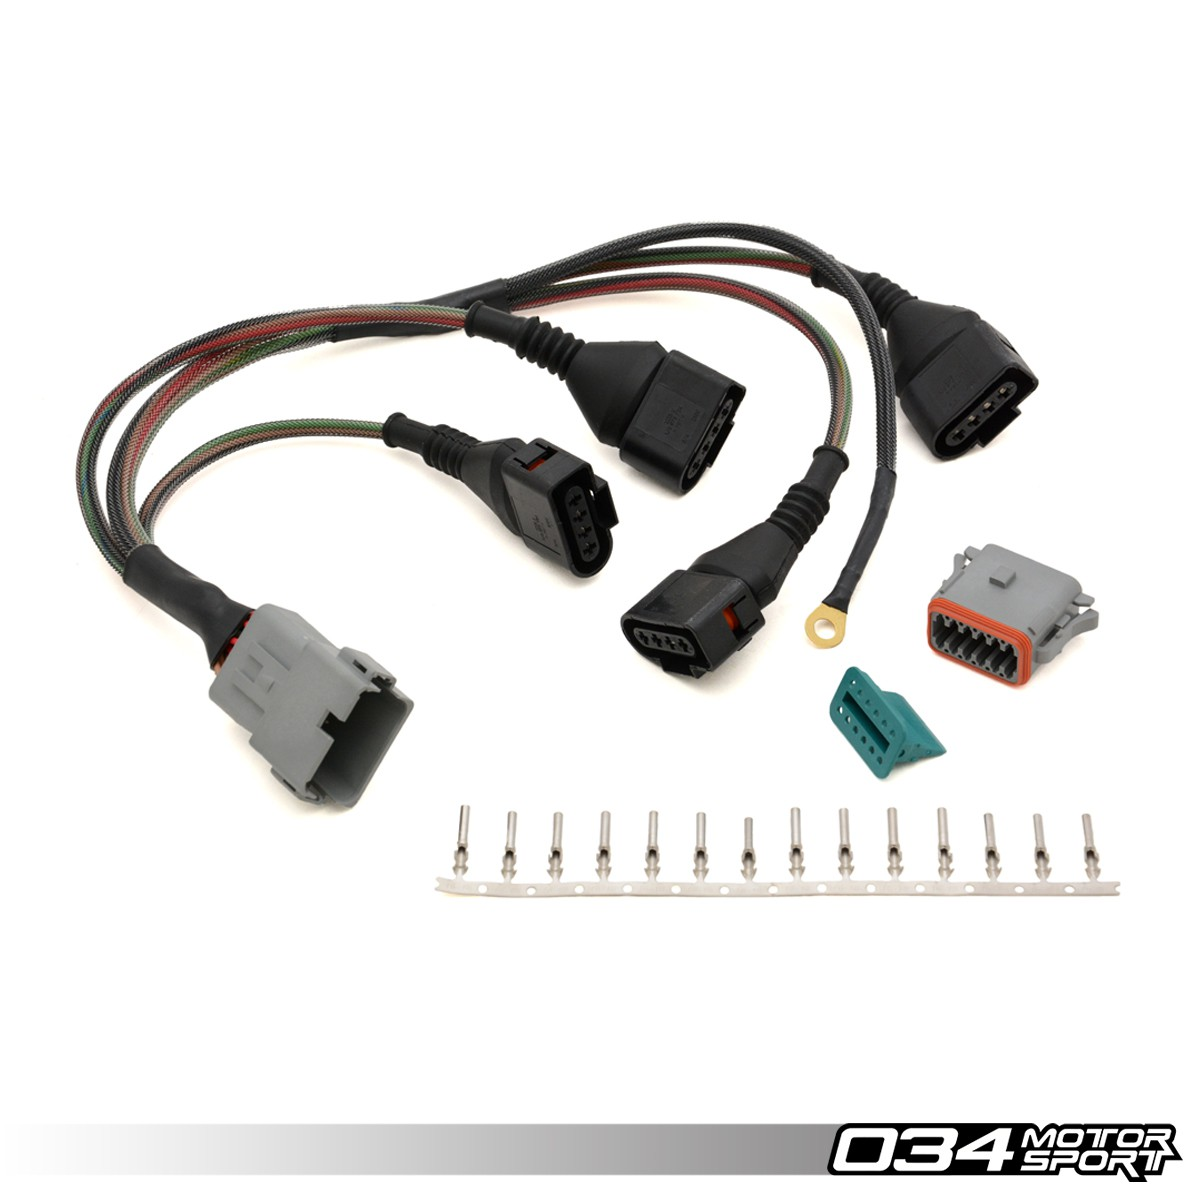 repair update harness audi volkswagen 18t with 4 wire coils 034motorsport 034 701 0004 2 repair update harness, audi volkswagen 1 8t with 4 wire coils Wire Harness Maintance at honlapkeszites.co